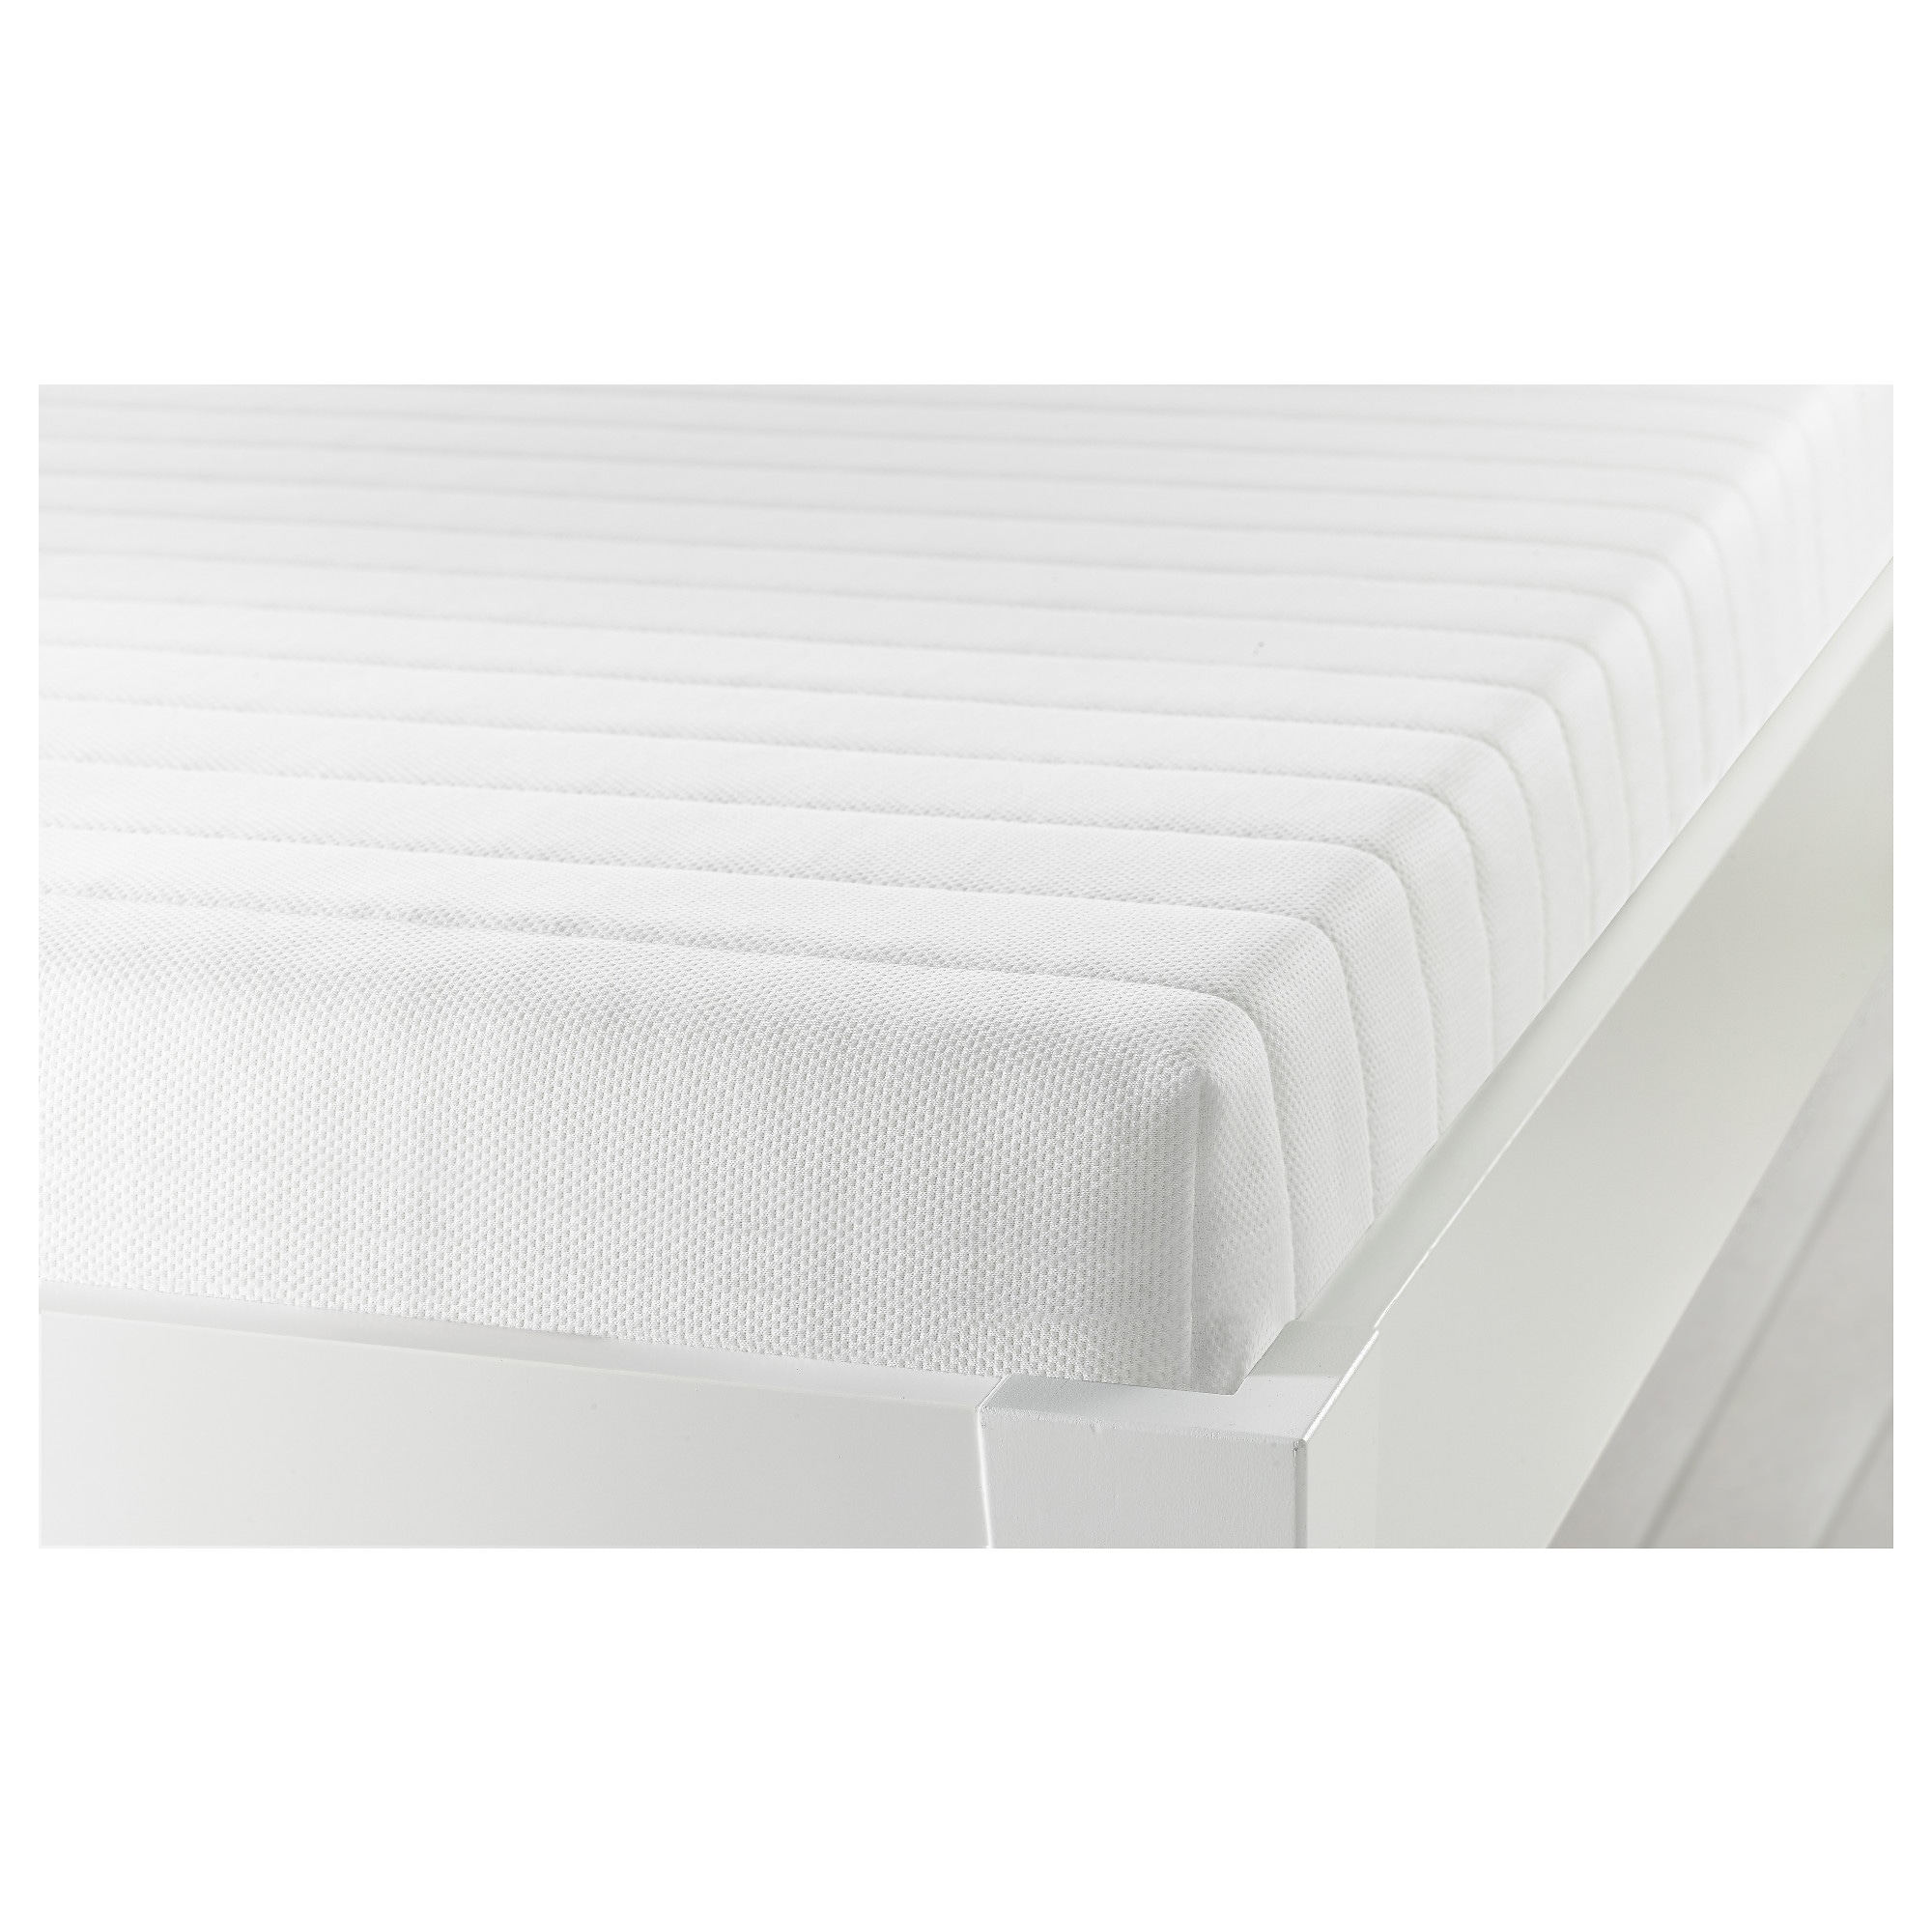 Materassi In Memory Ikea.Materasso King Size Ikea Image Of Tempurpedic Elite Breeze Mattress